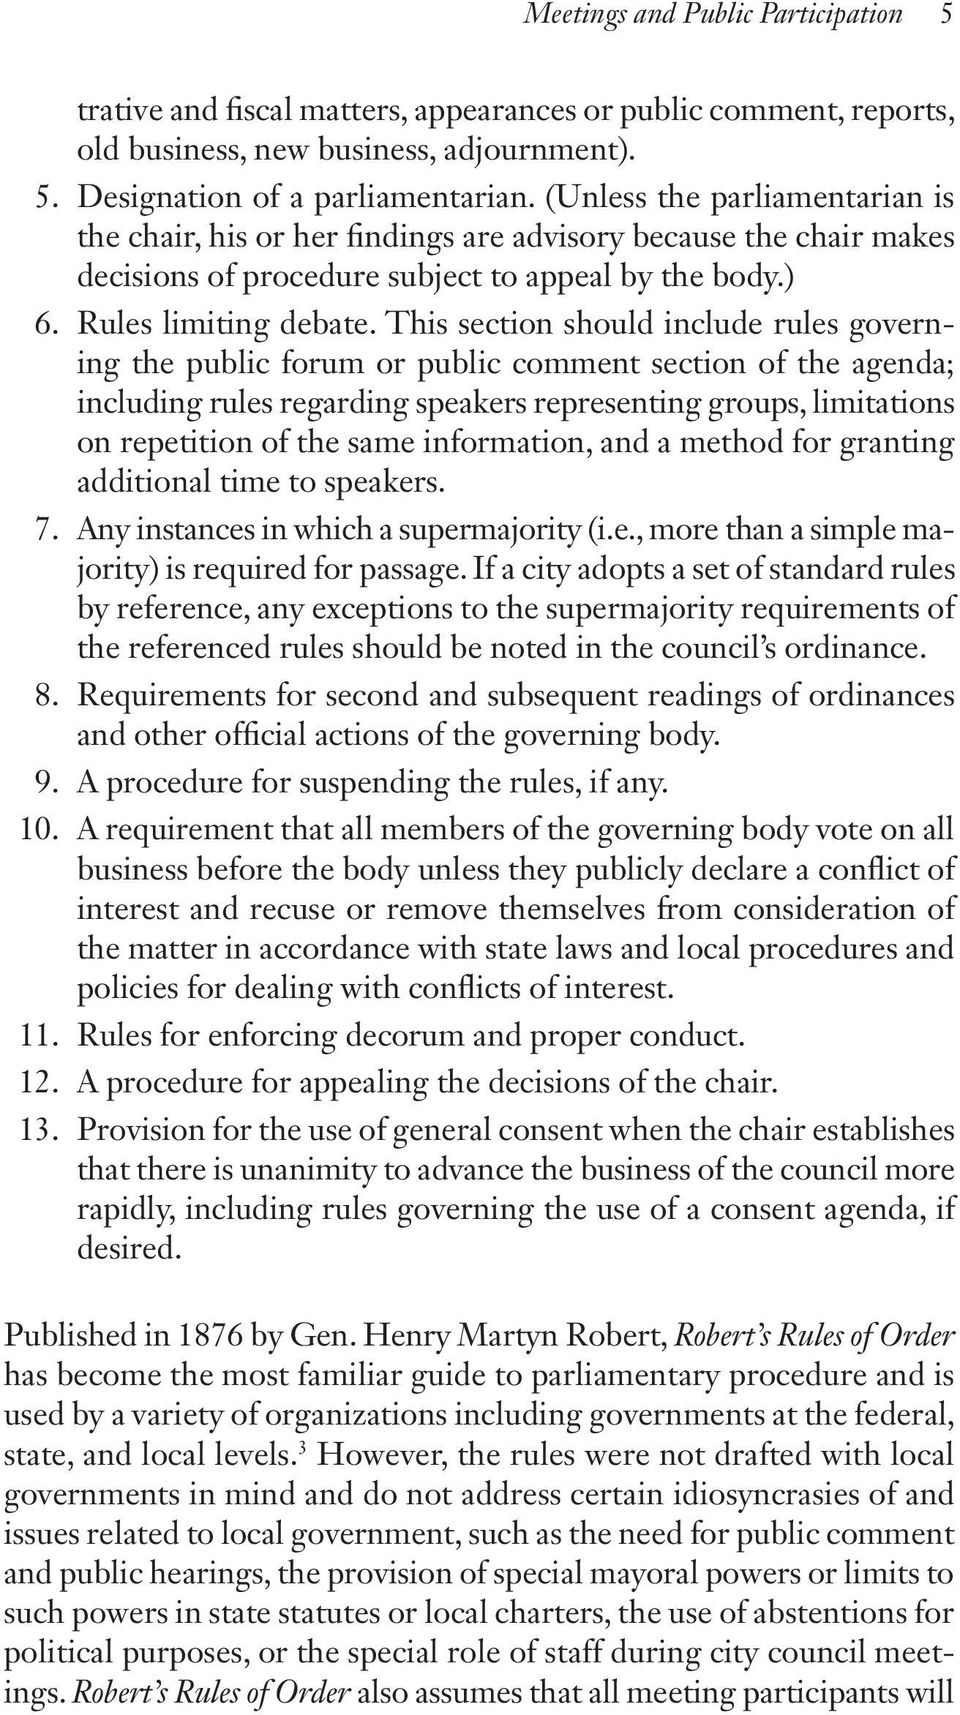 This section should include rules governing the public forum or public comment section of the agenda; including rules regarding speakers representing groups, limitations on repetition of the same